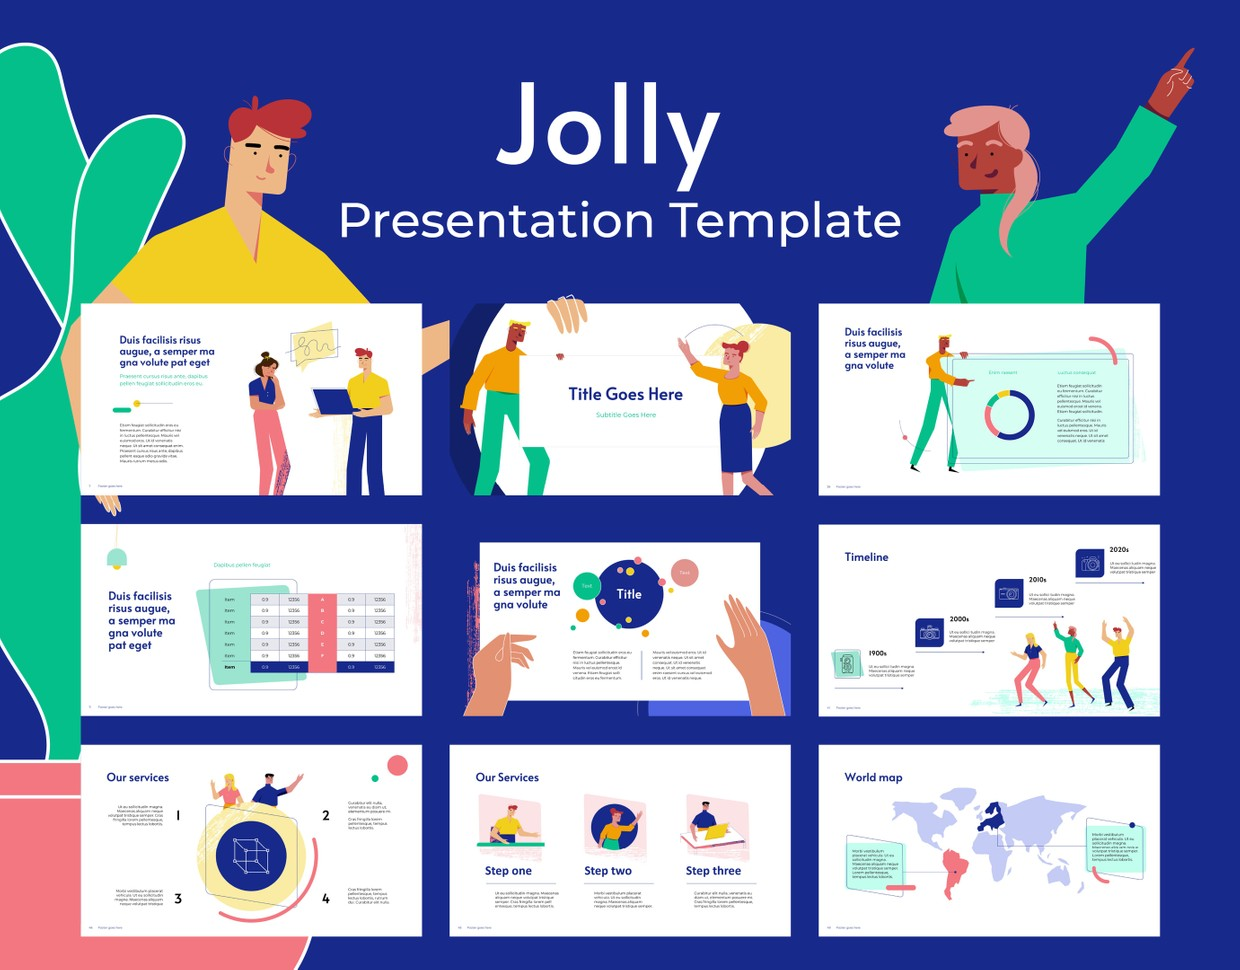 Jolly PPT Template